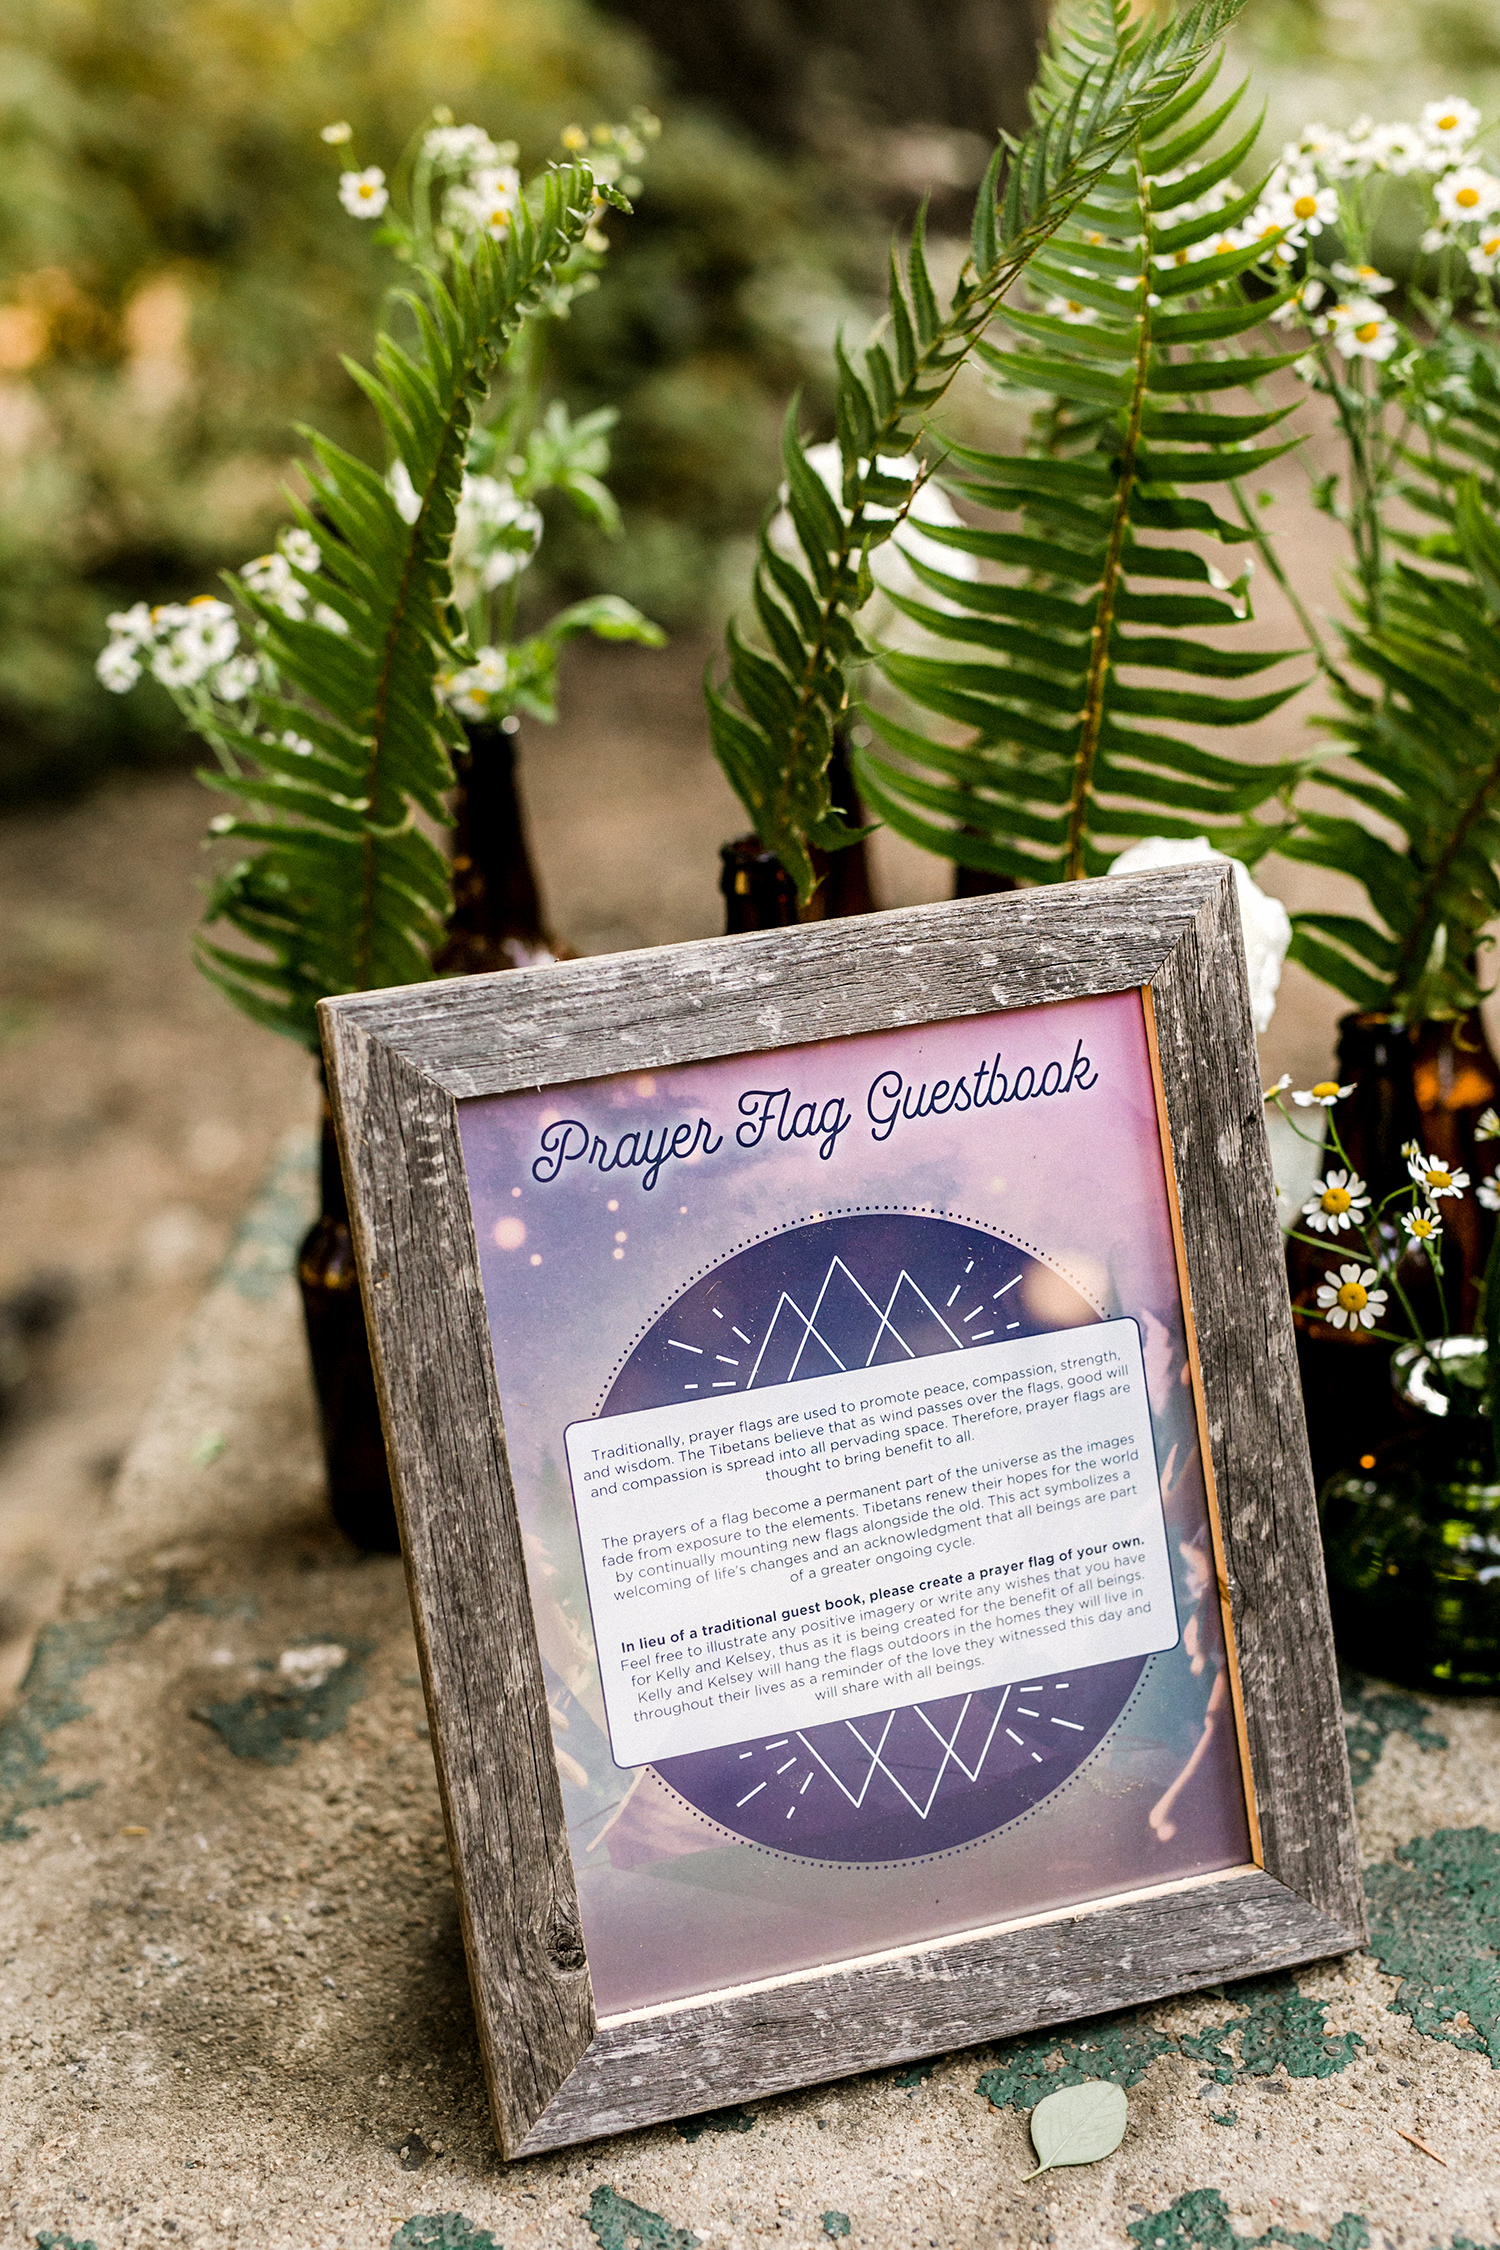 The Prayer Flag Guestbook